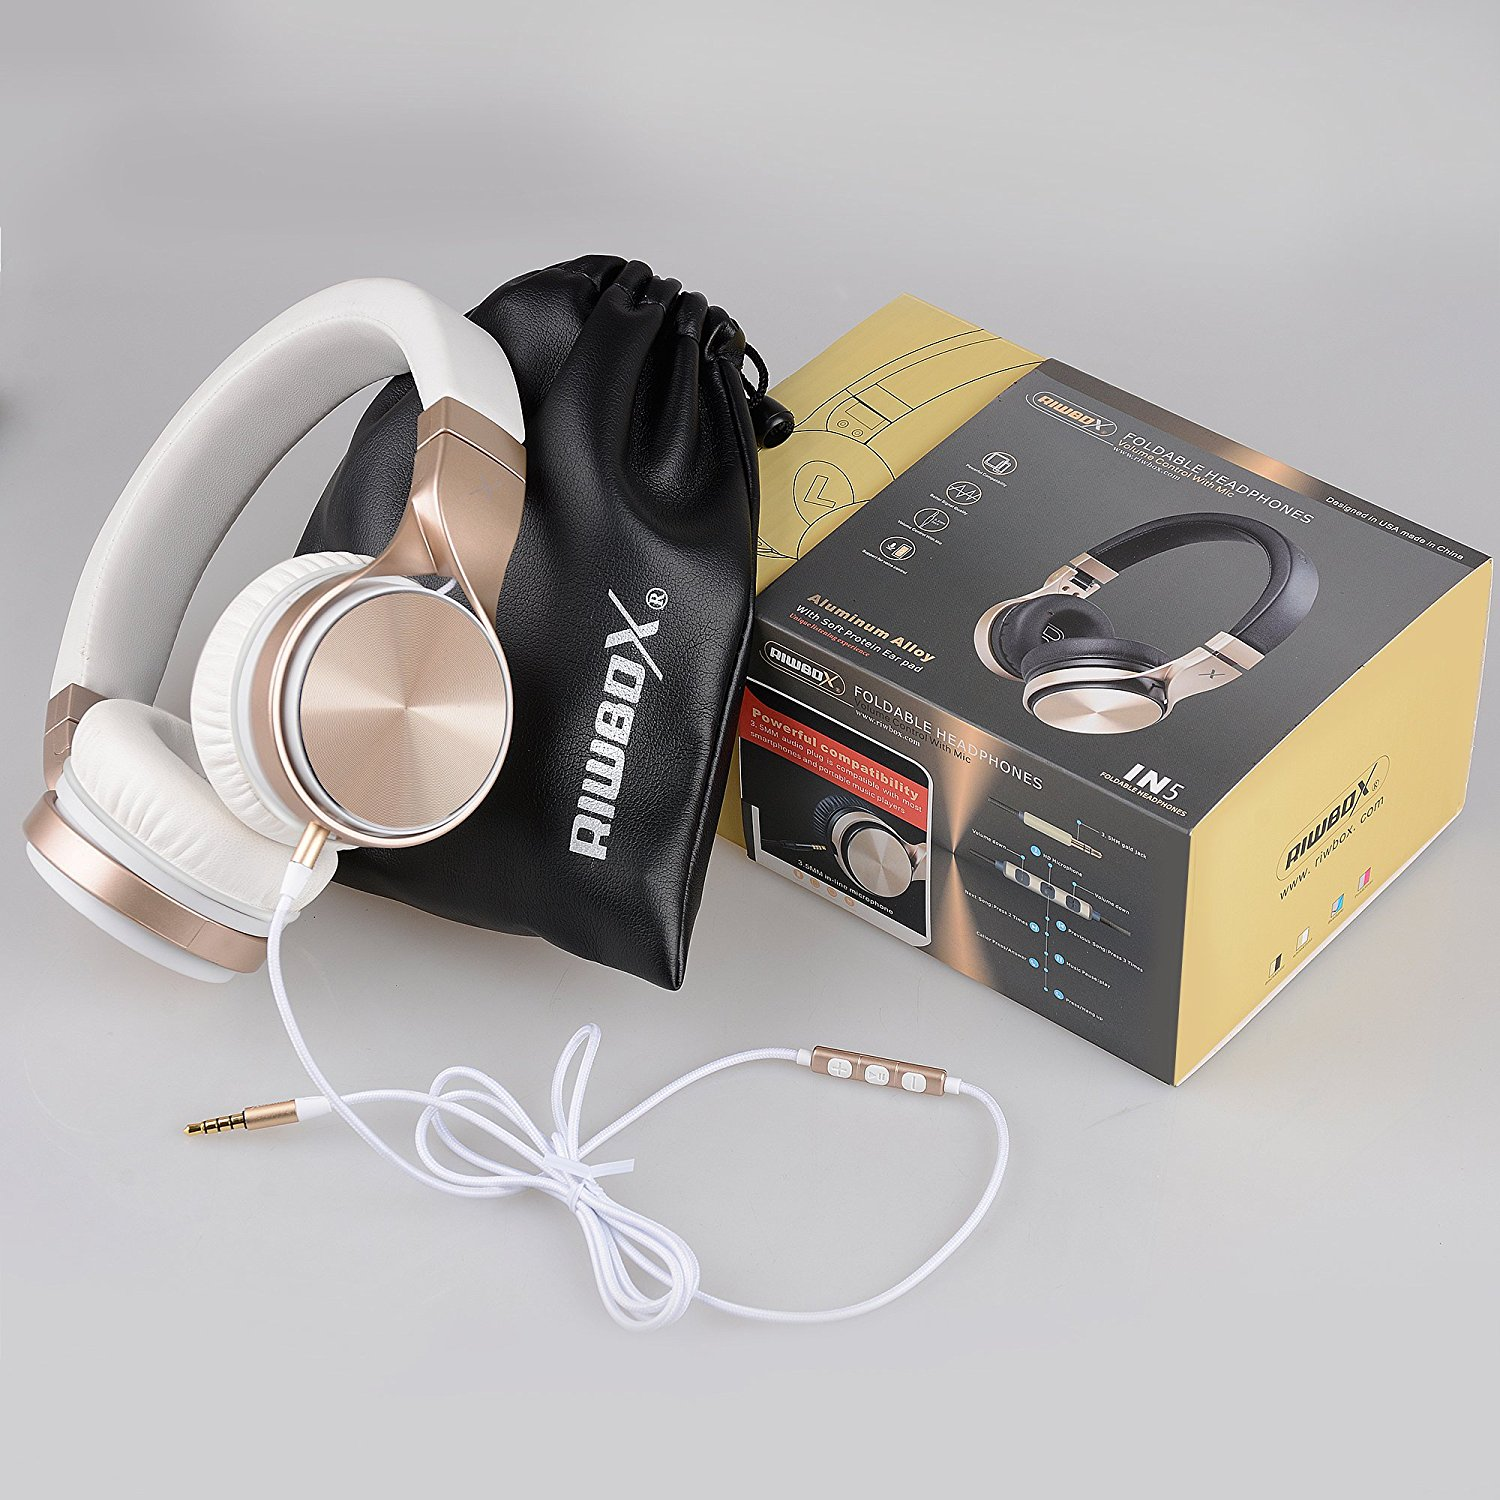 Riwbox IN5 Headphones Review